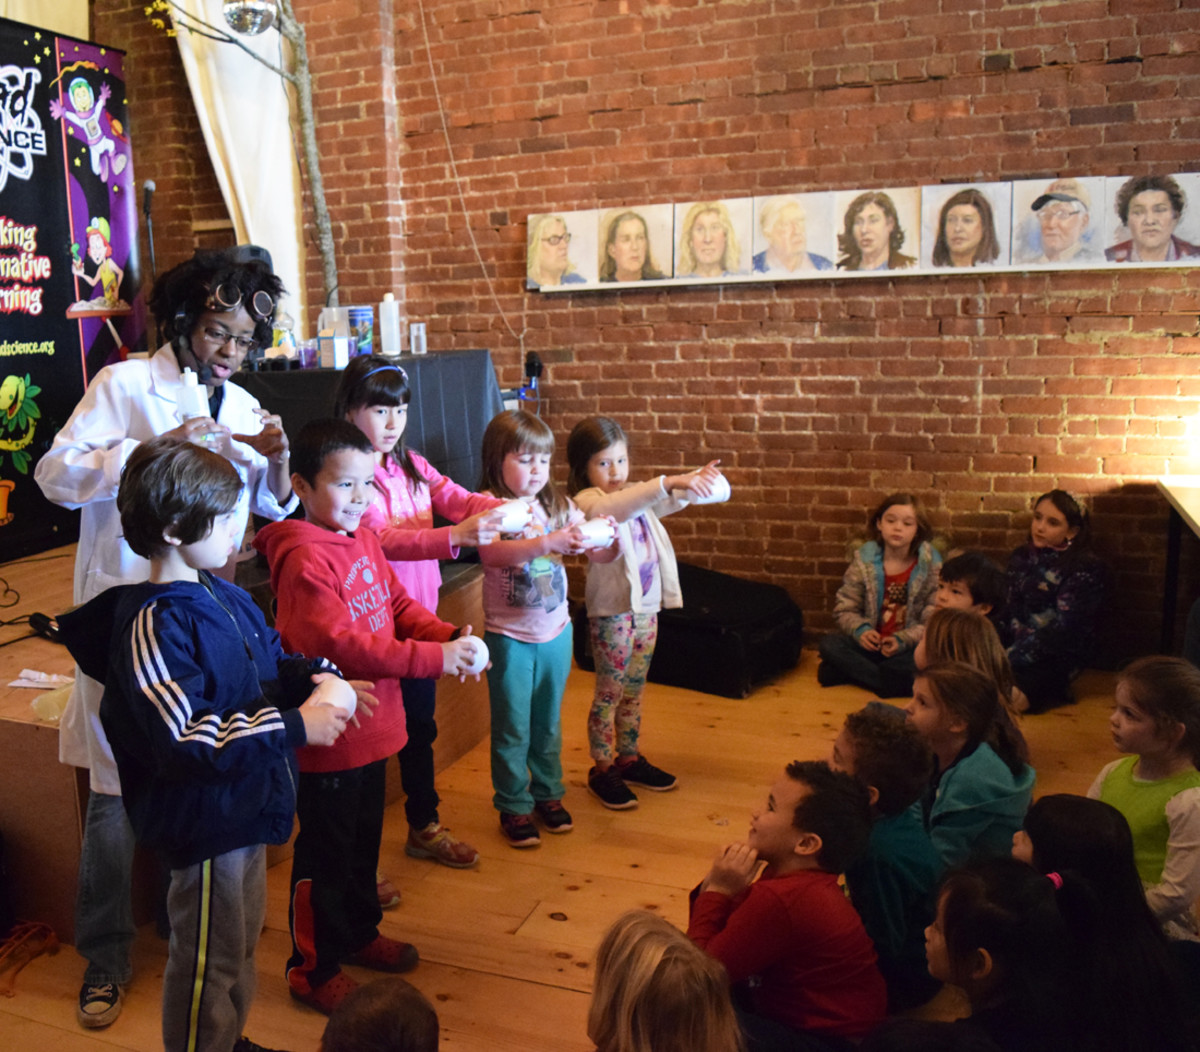 audience participation at Mad Science event